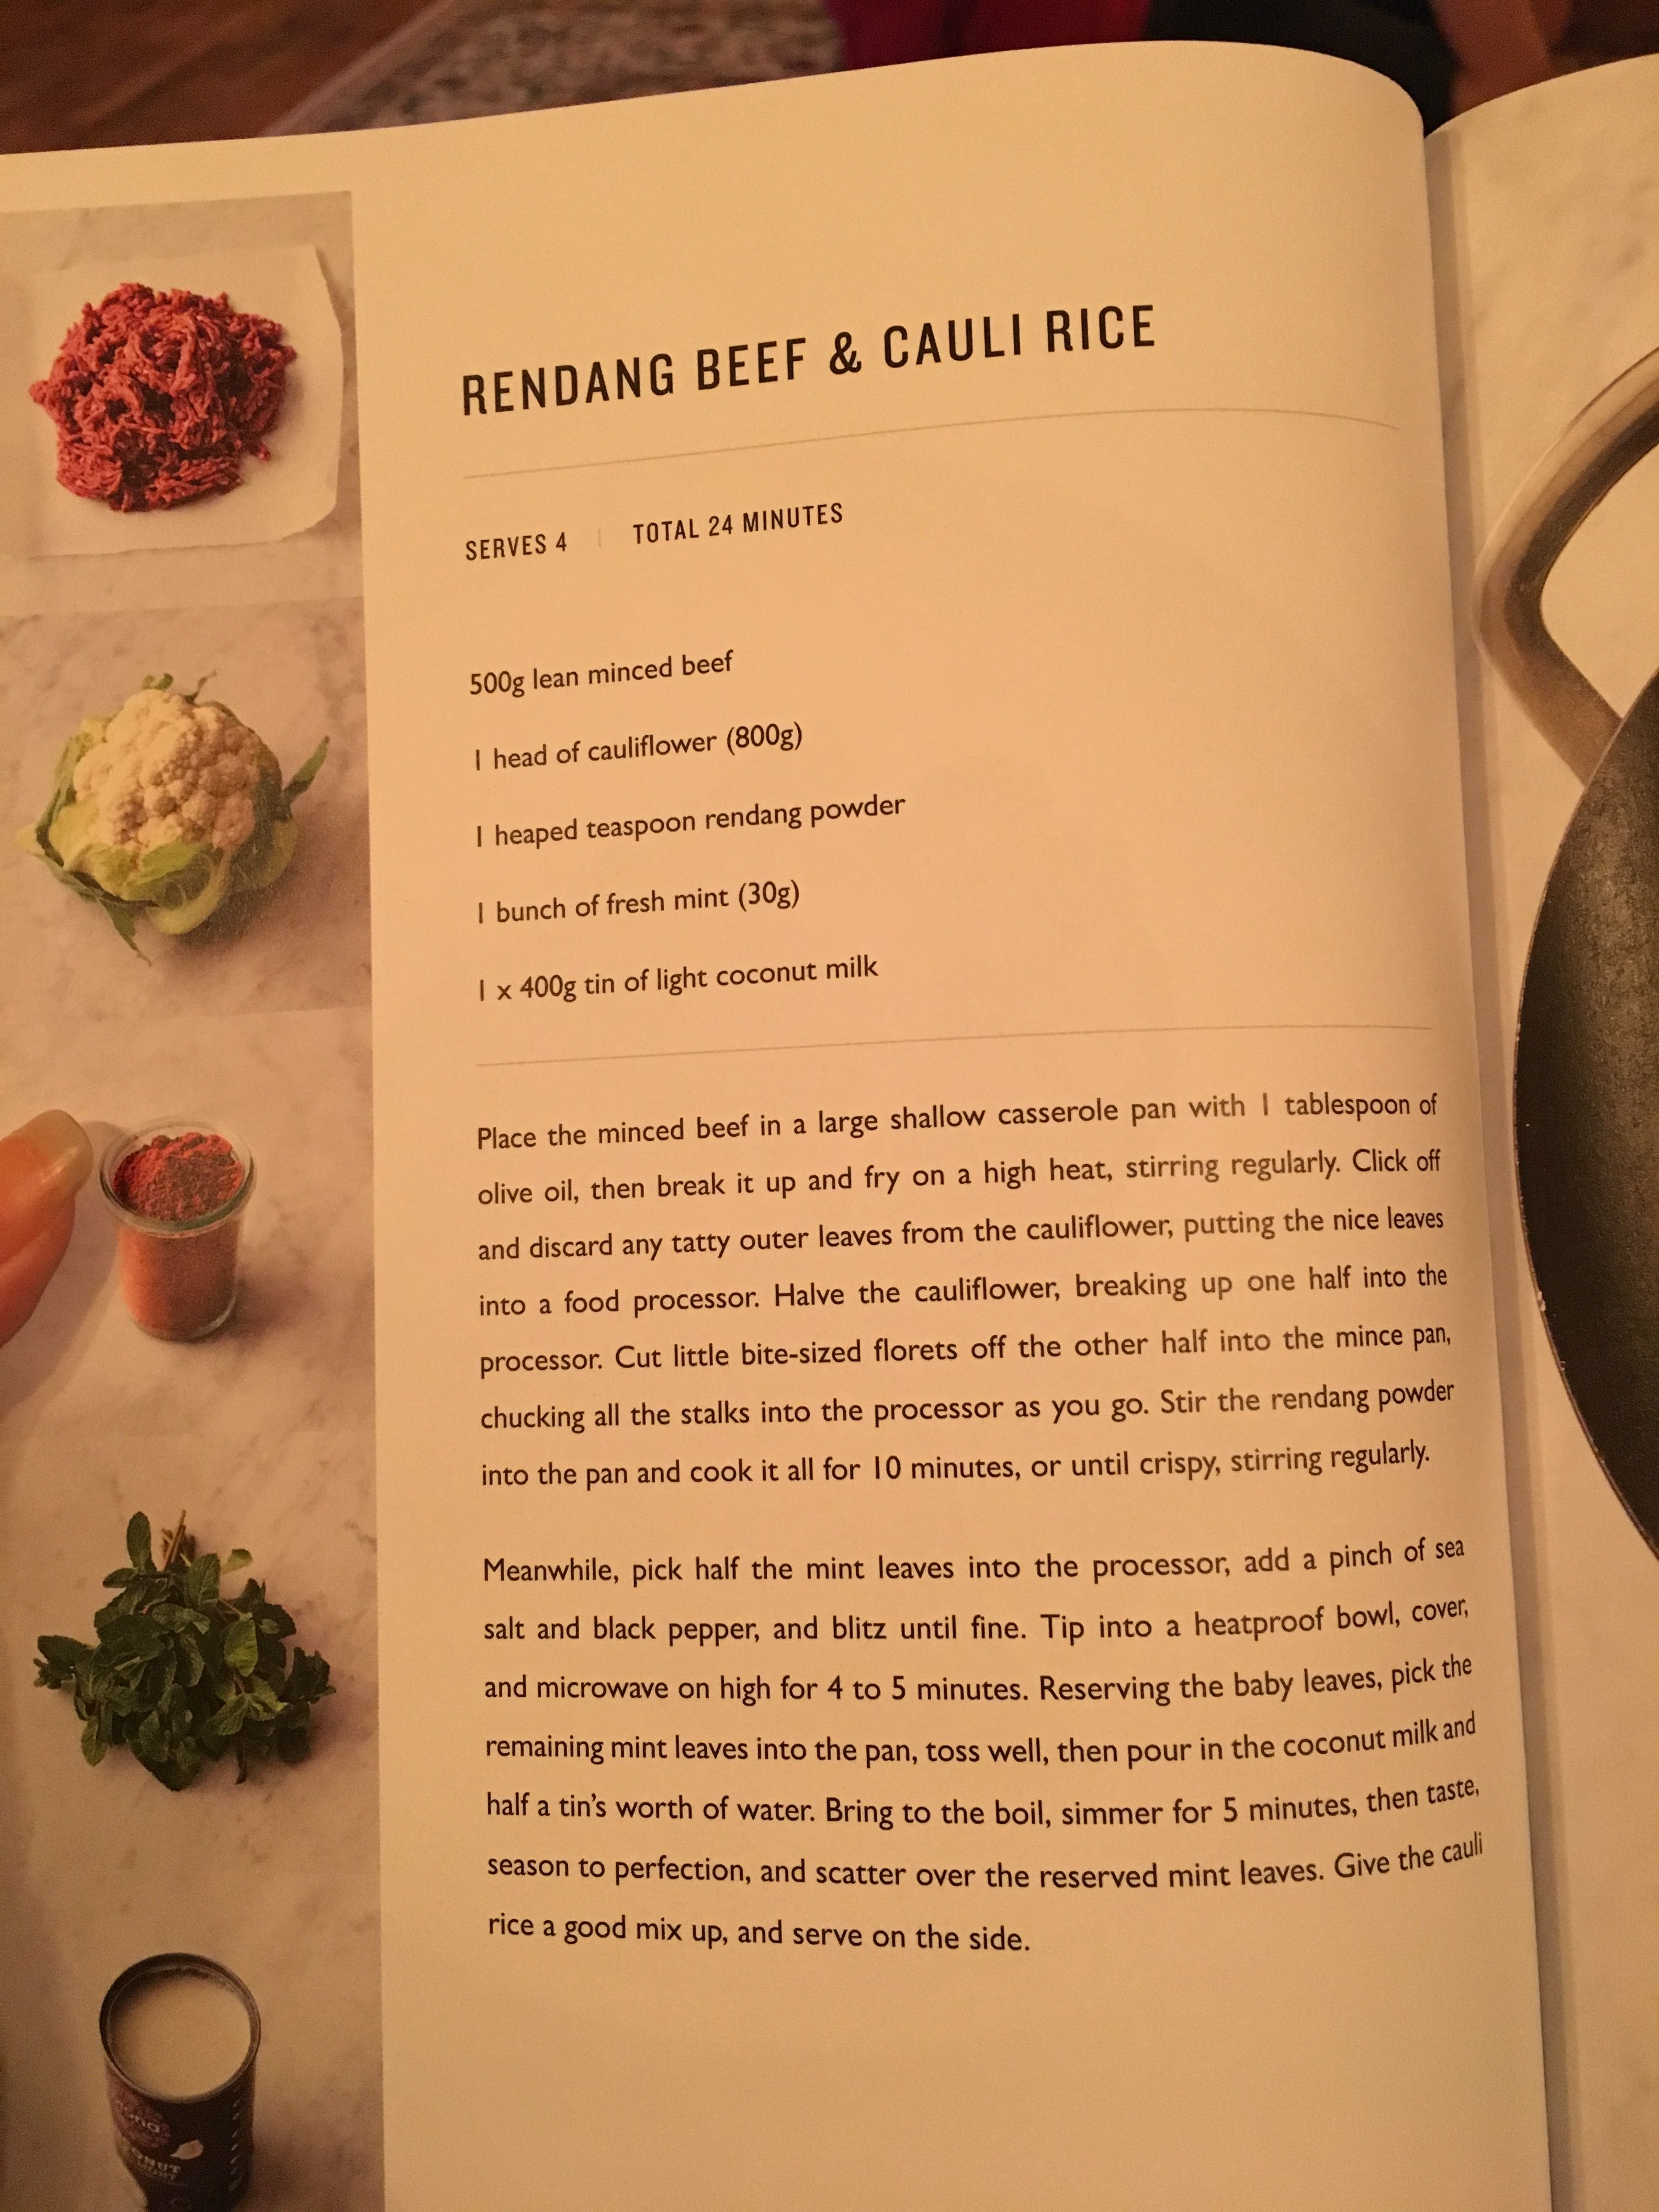 Beef Rendang And Cauli Rice Jamie Oliver Recipes Beef Curry Recipe Recipes